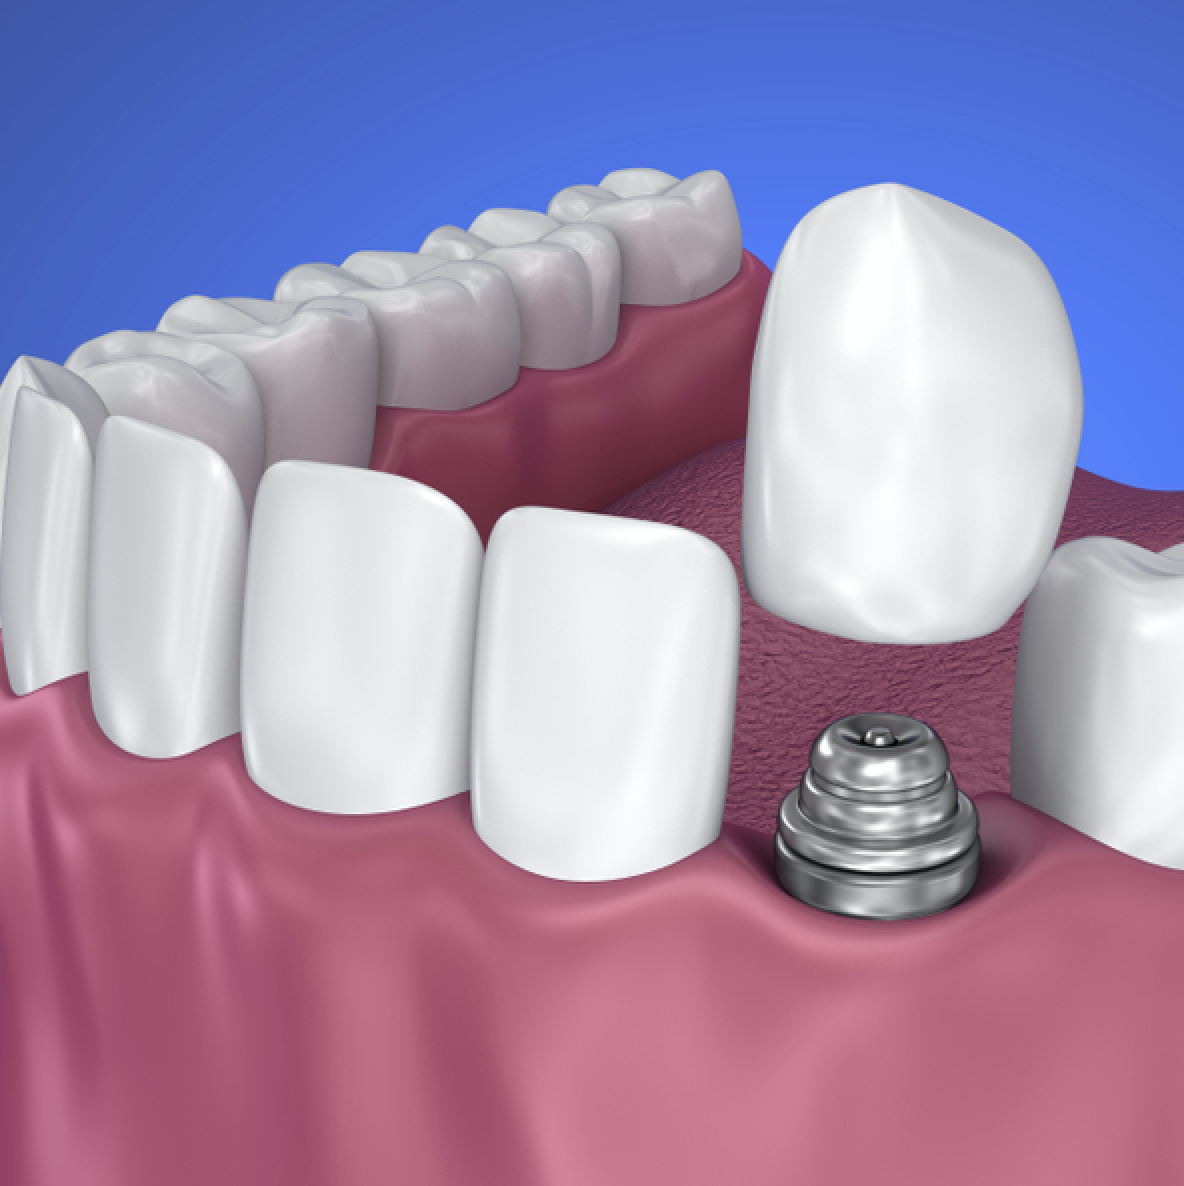 A dental crown is a natural-looking cap which is placed ...